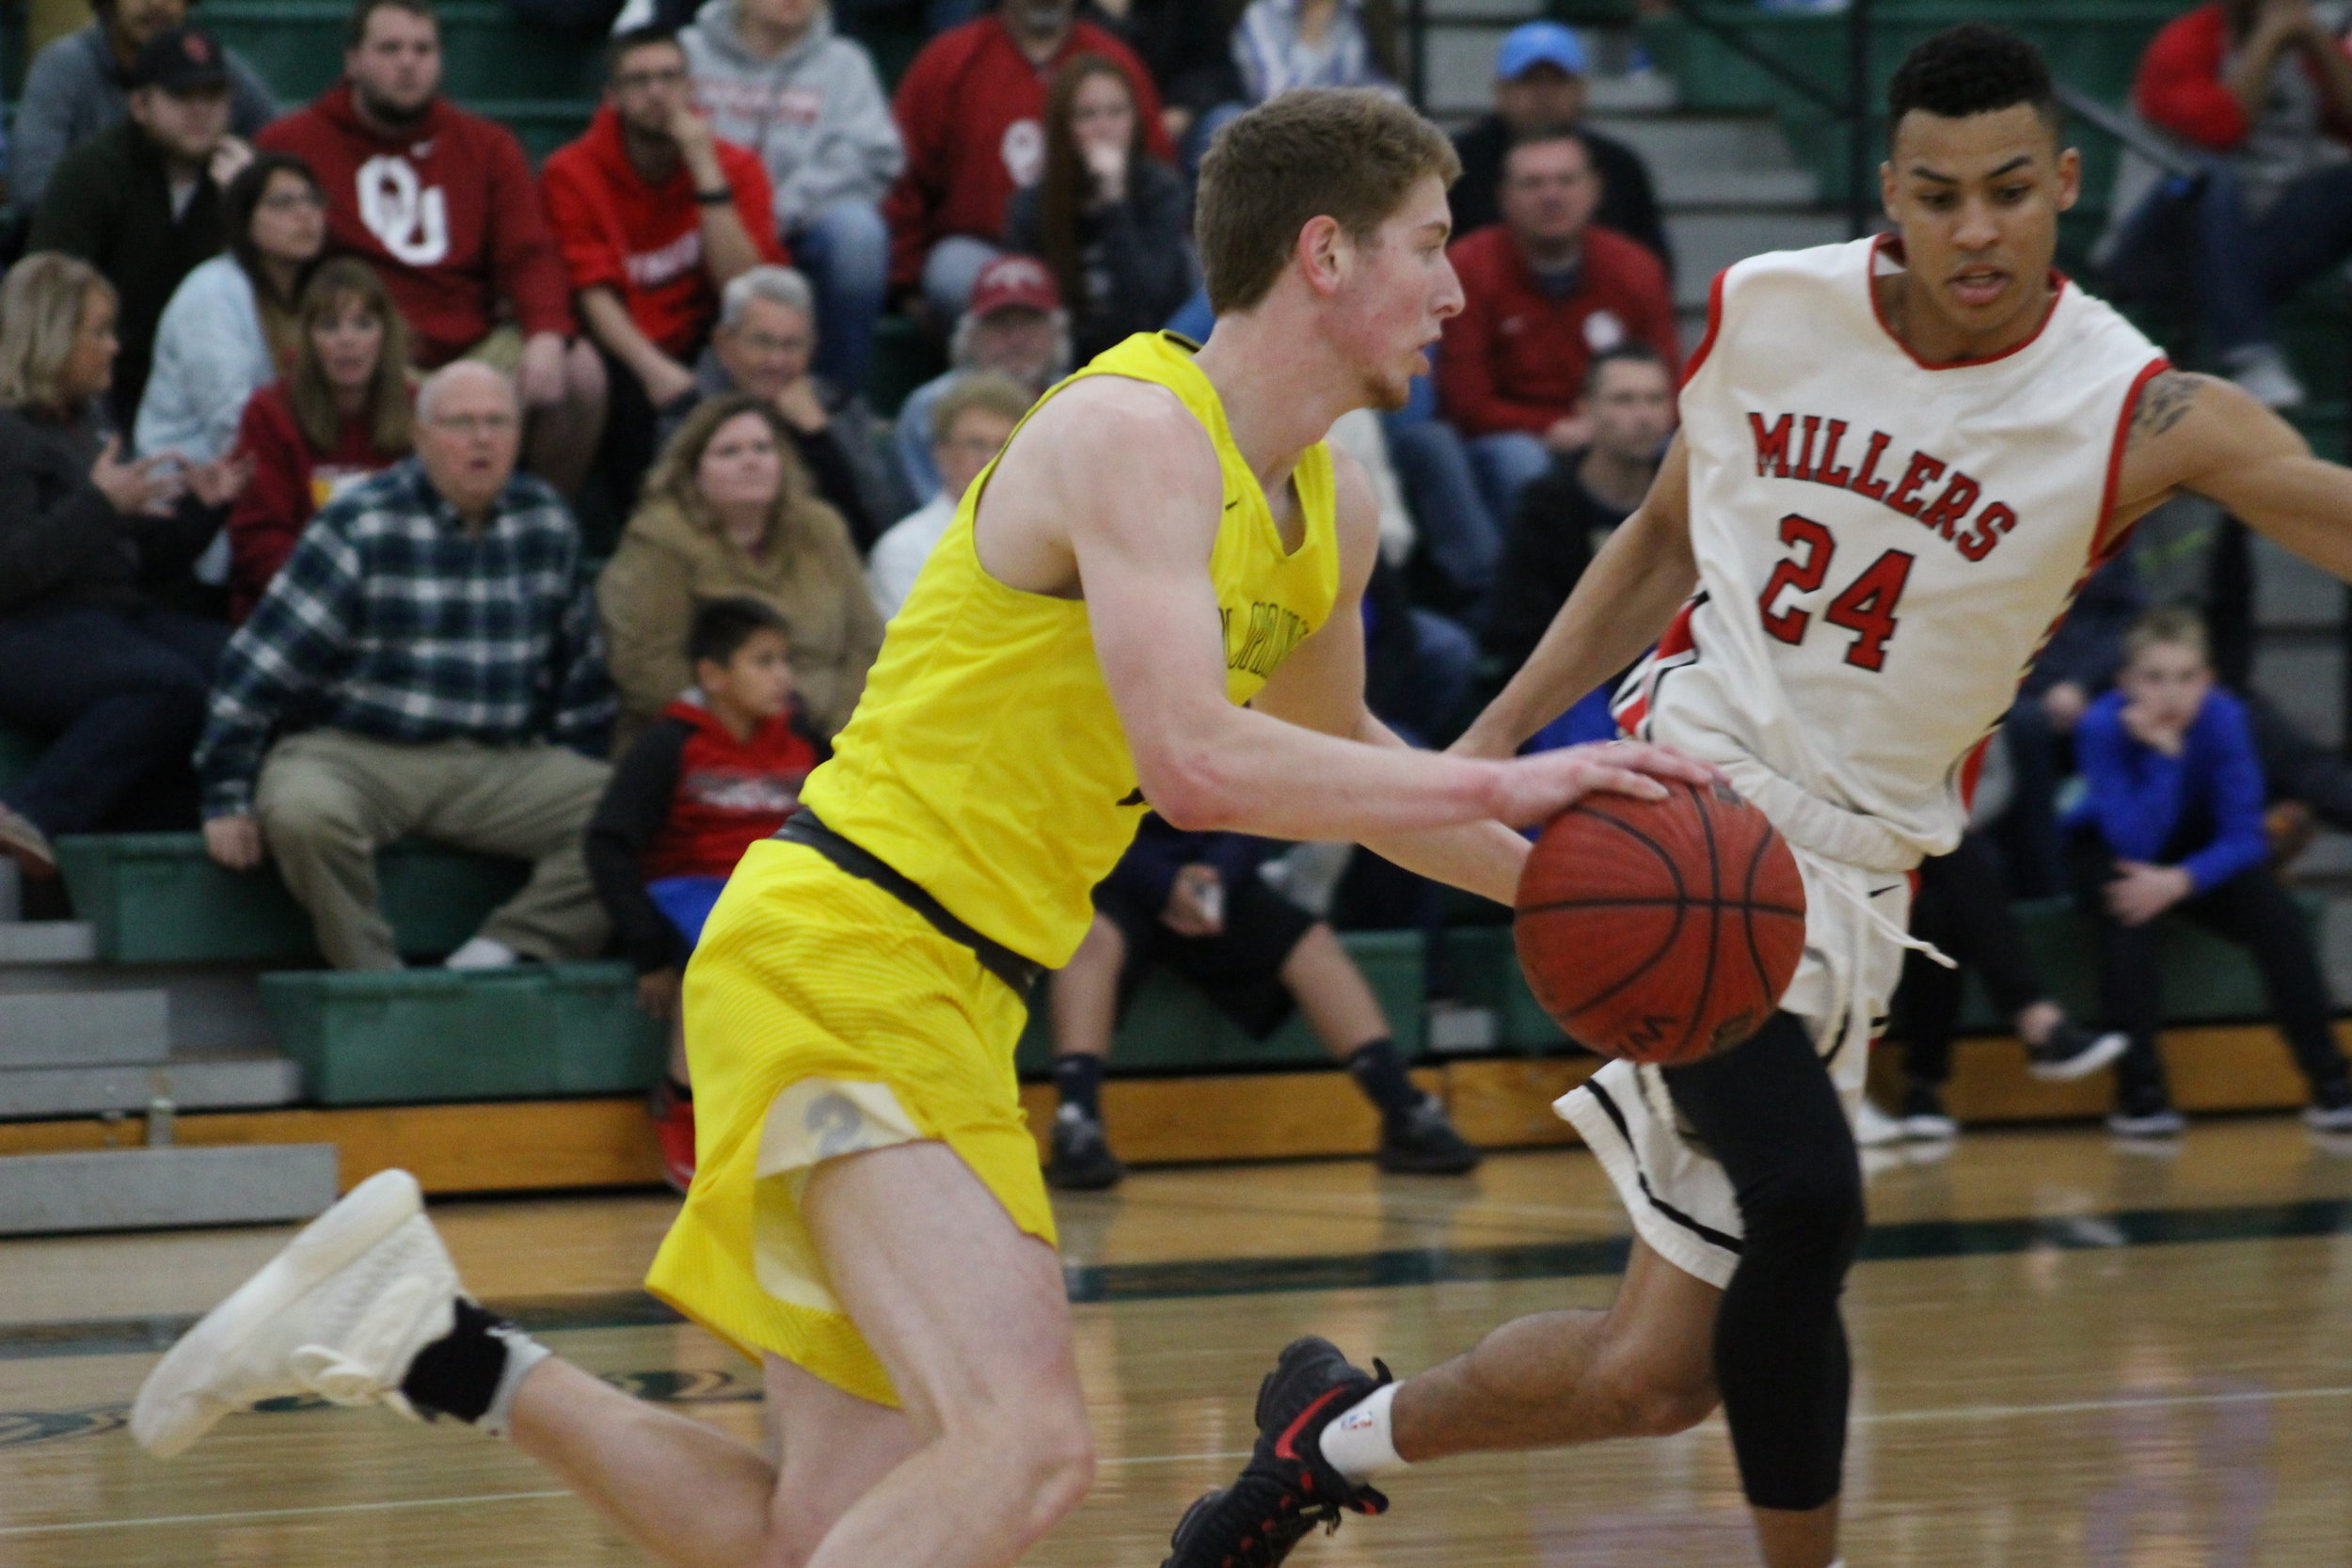 CPHS junior Colt Savage posted 28 points in the Regional Championship game at Norman North. (Photo: Scott Emigh).